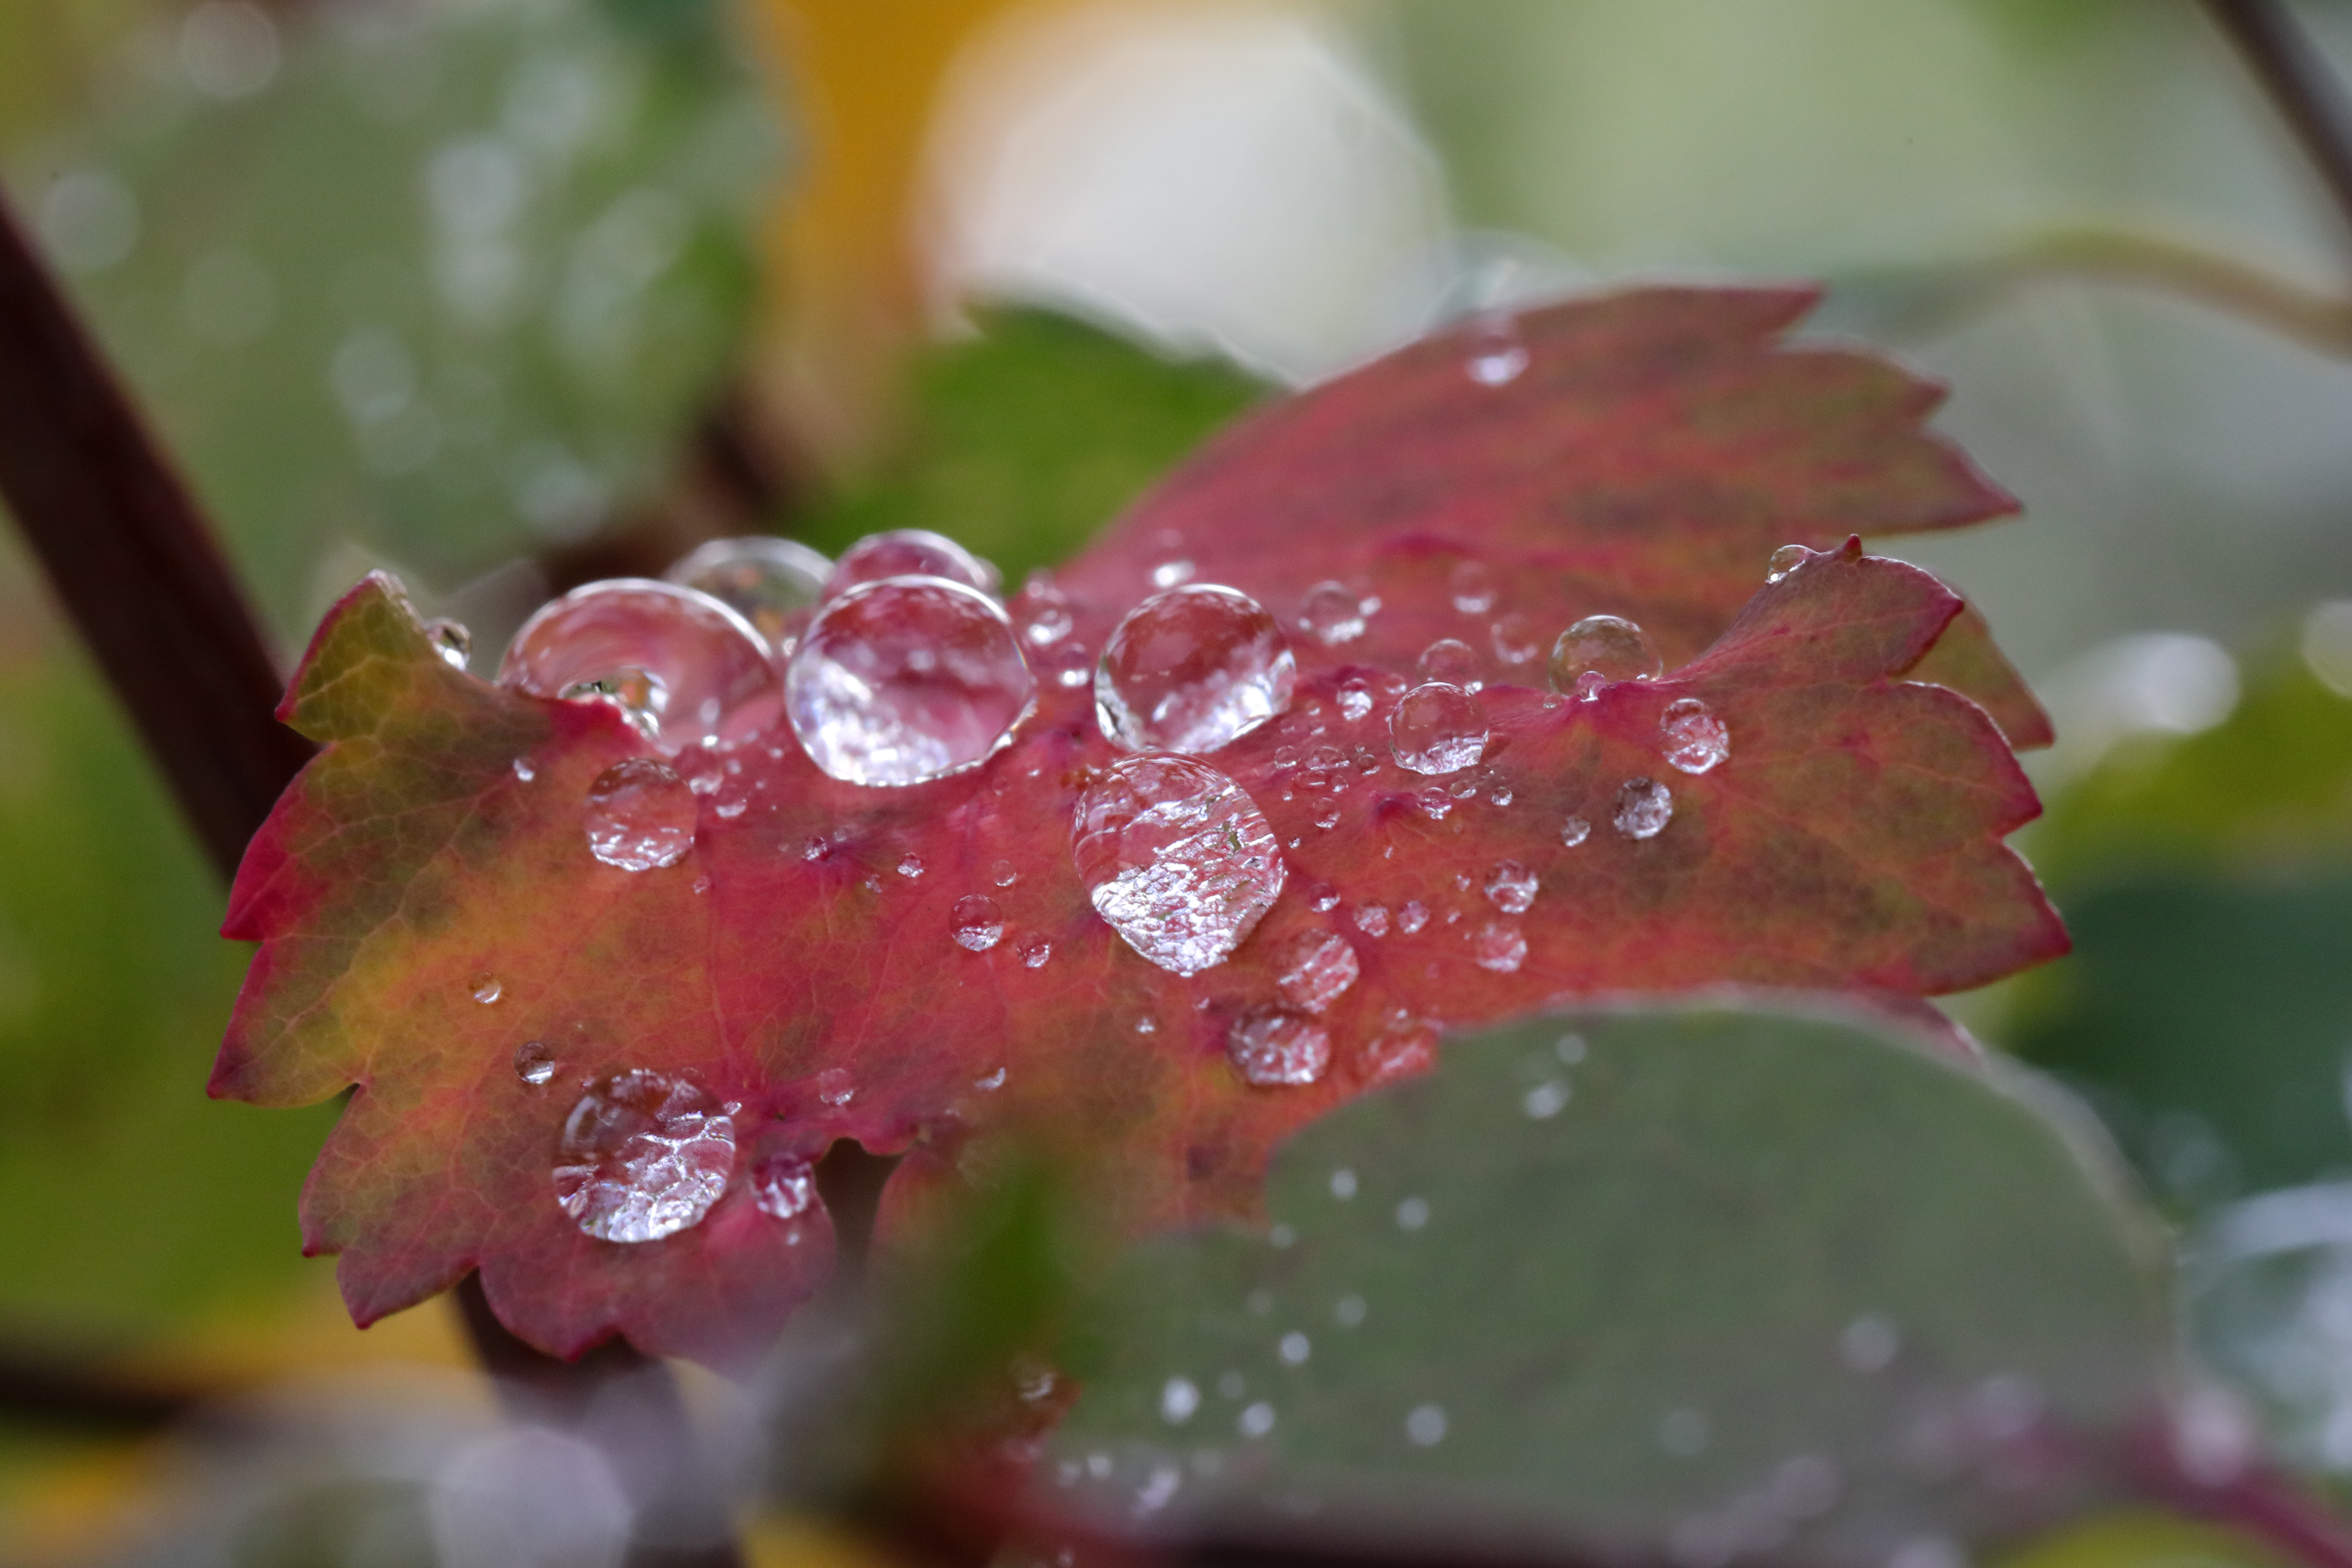 574A9585_c.jpg - Drops on leaf after the rain